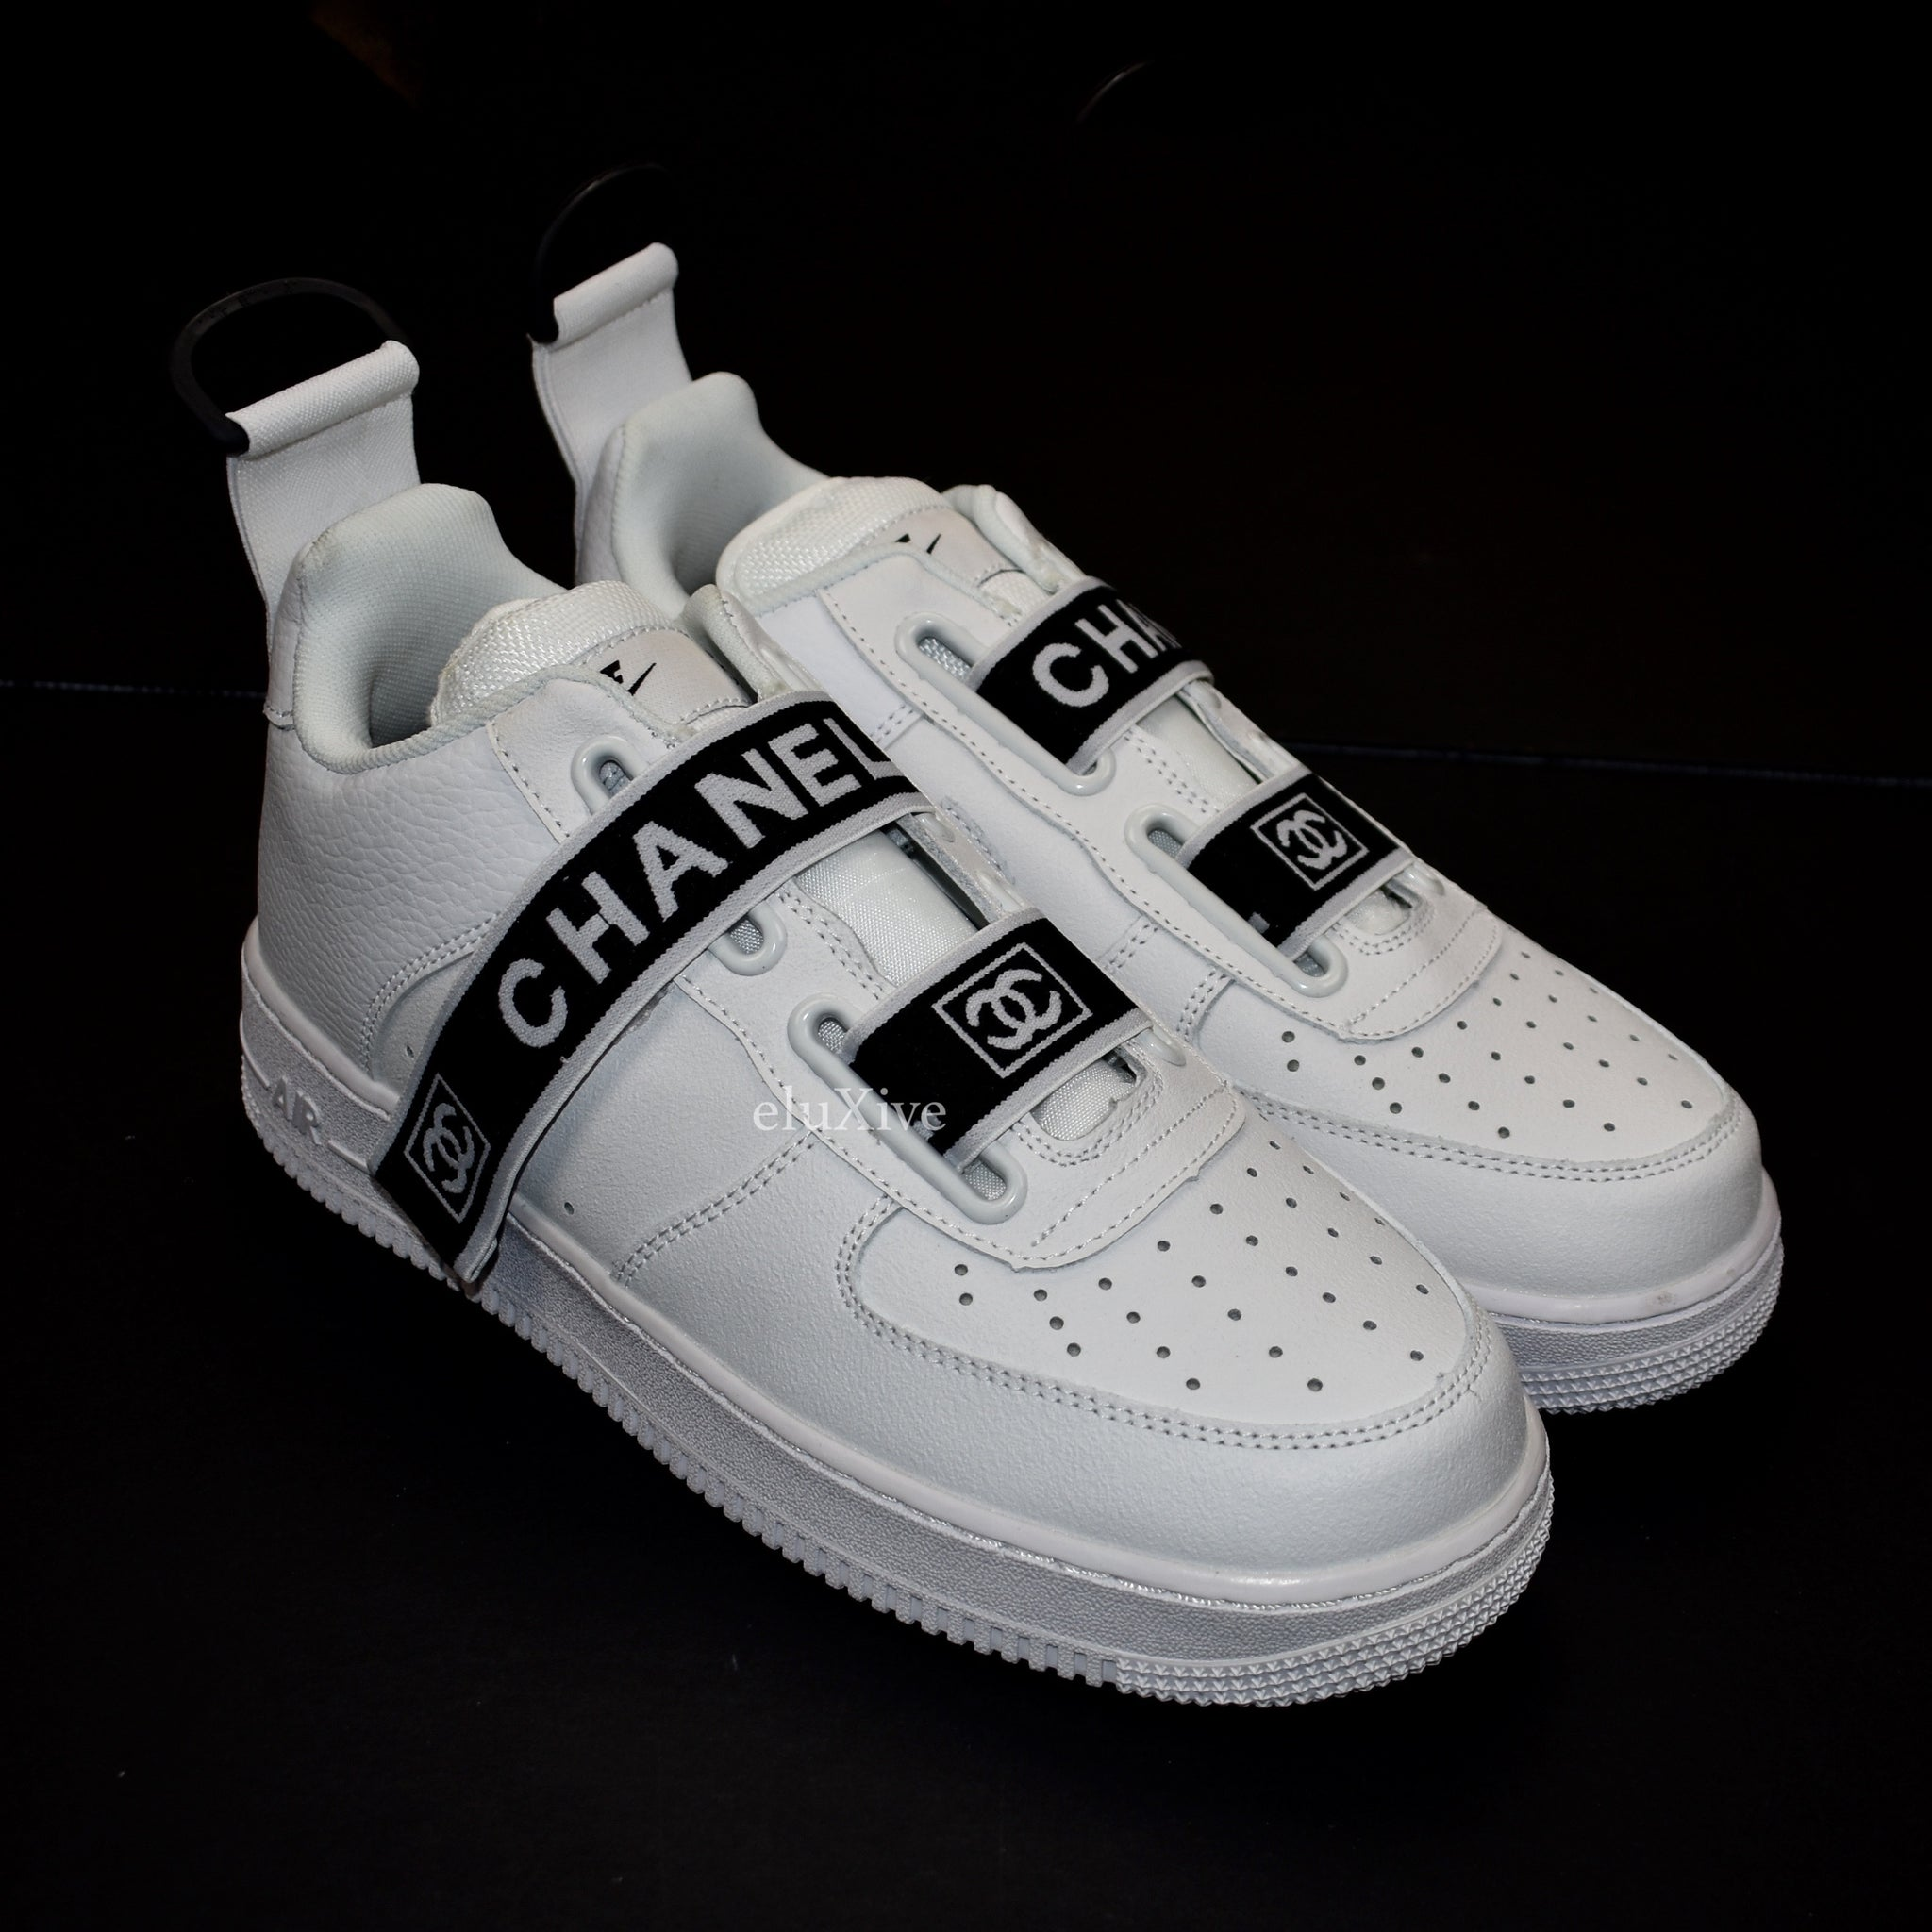 nike air force chanel